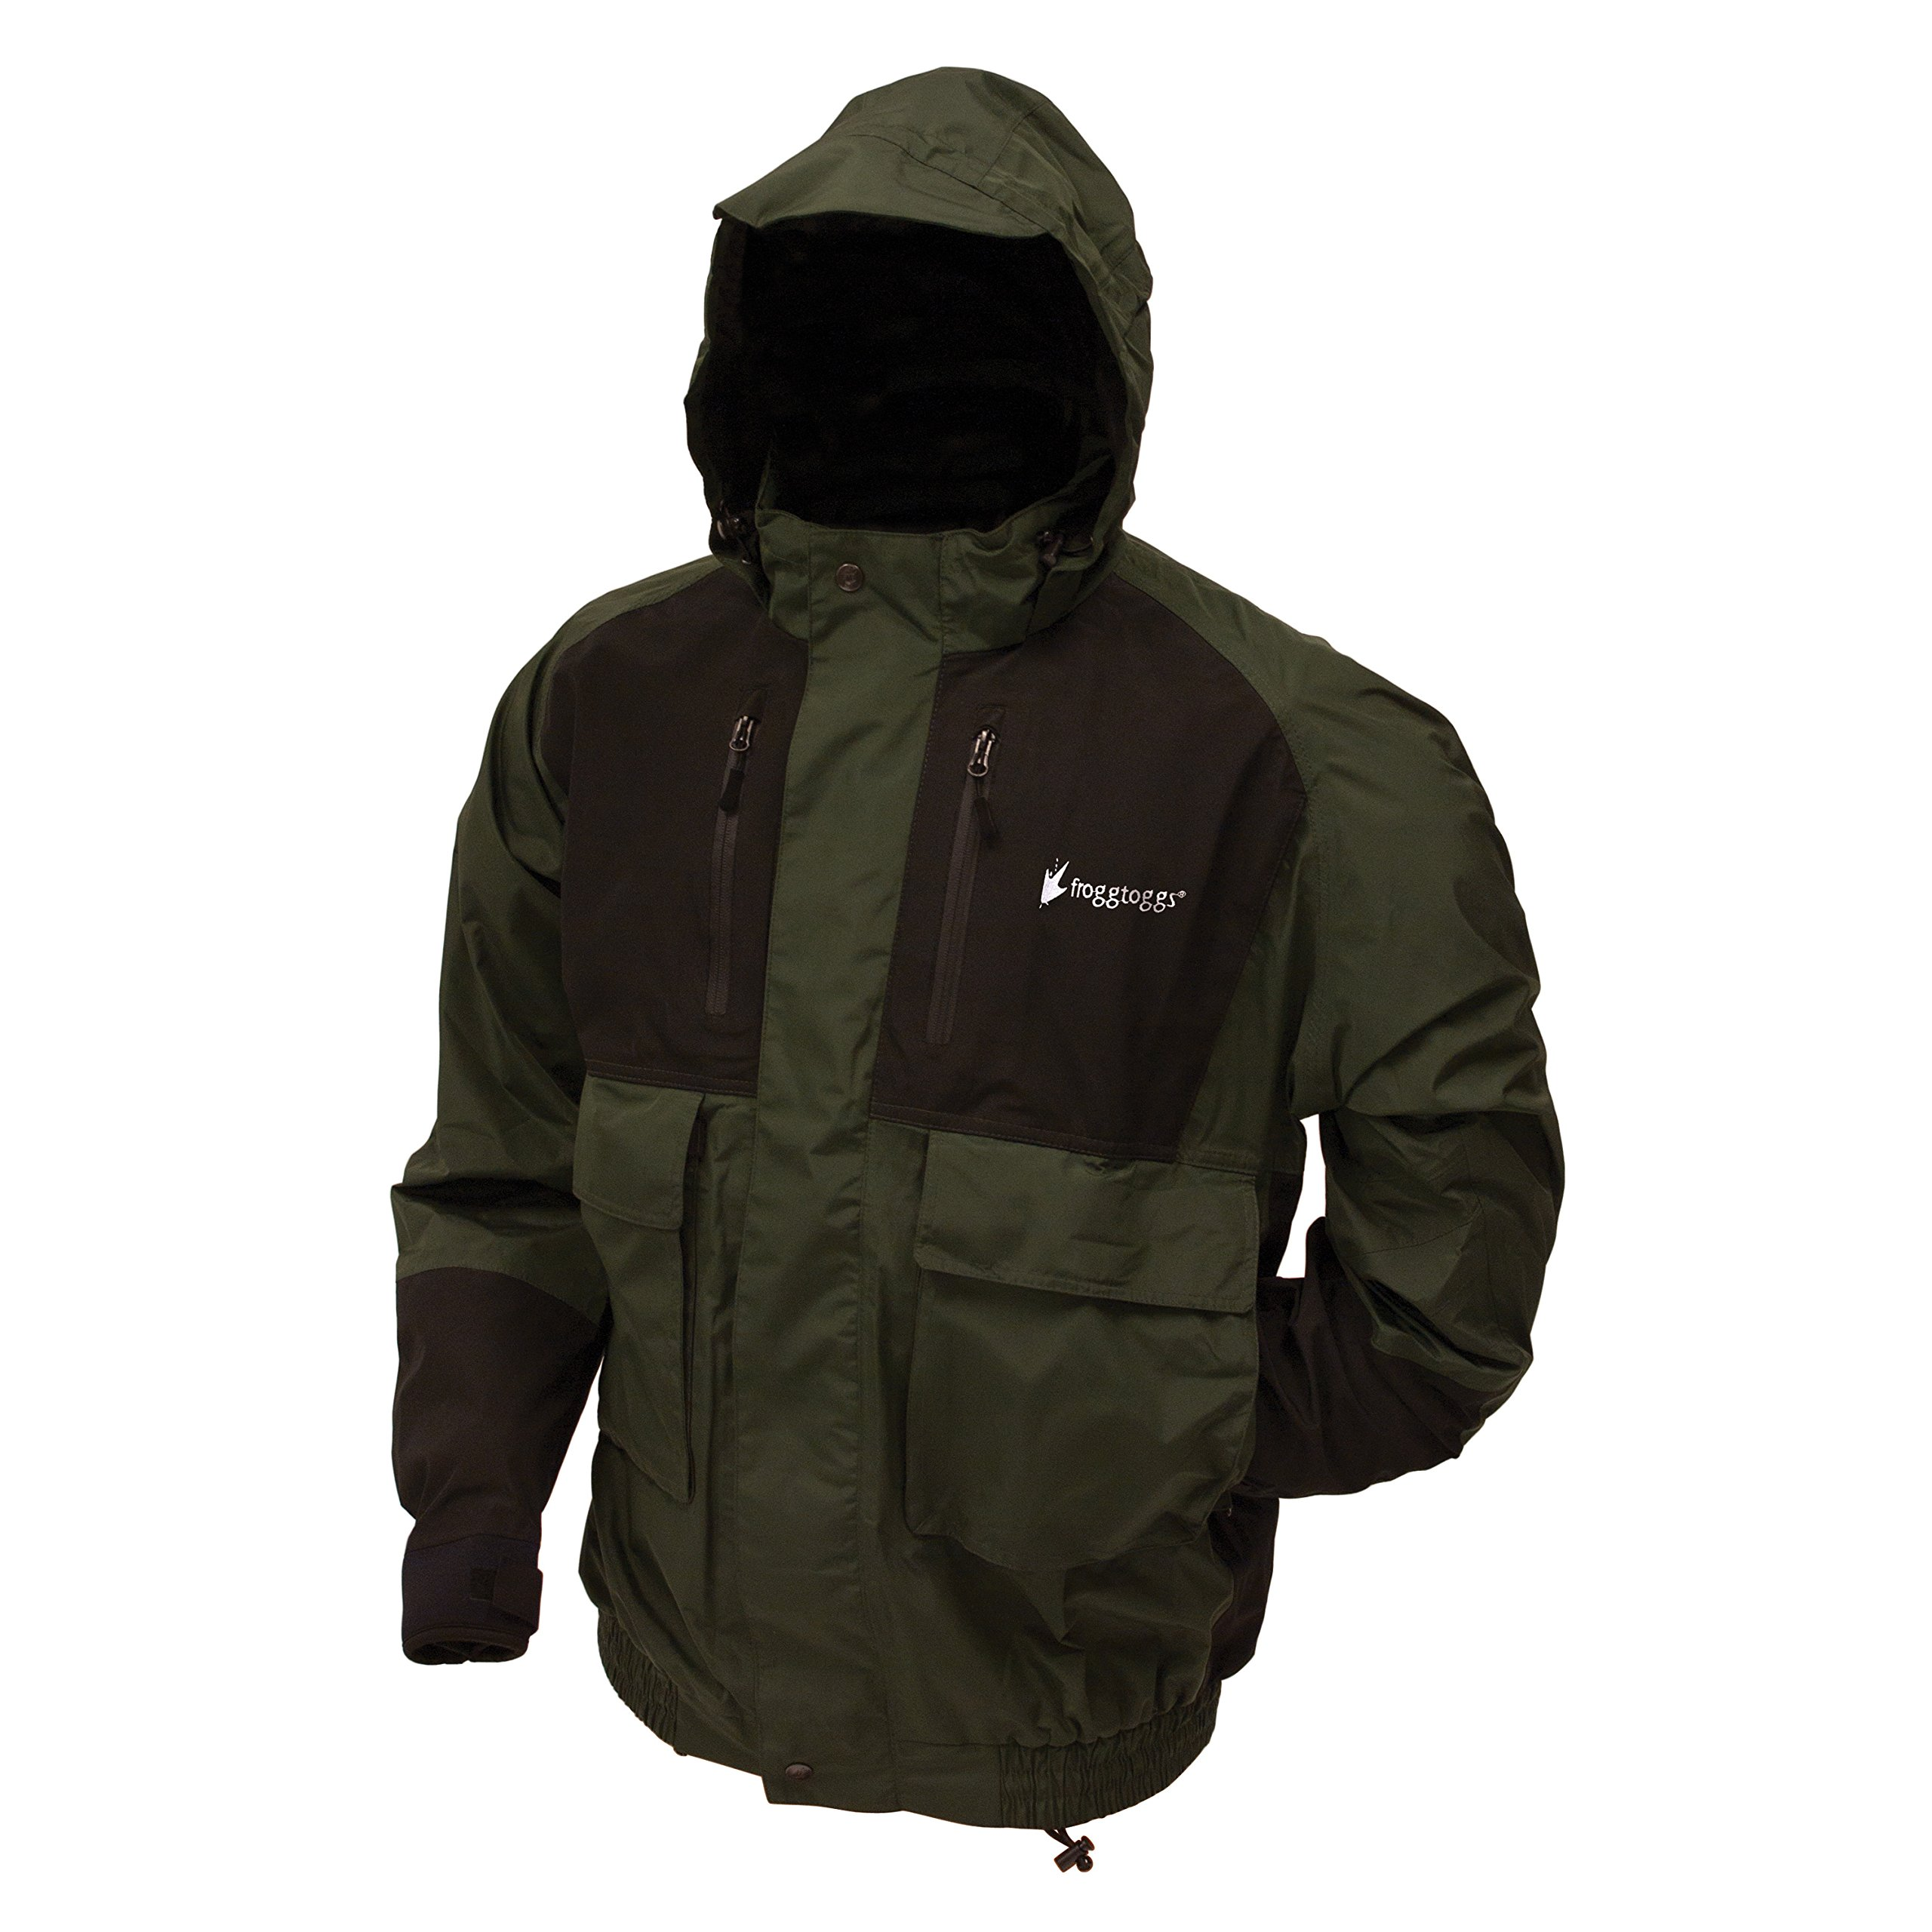 Frogg Toggs Toadz Firebelly Jacket, Green/Black, Size XX-Large